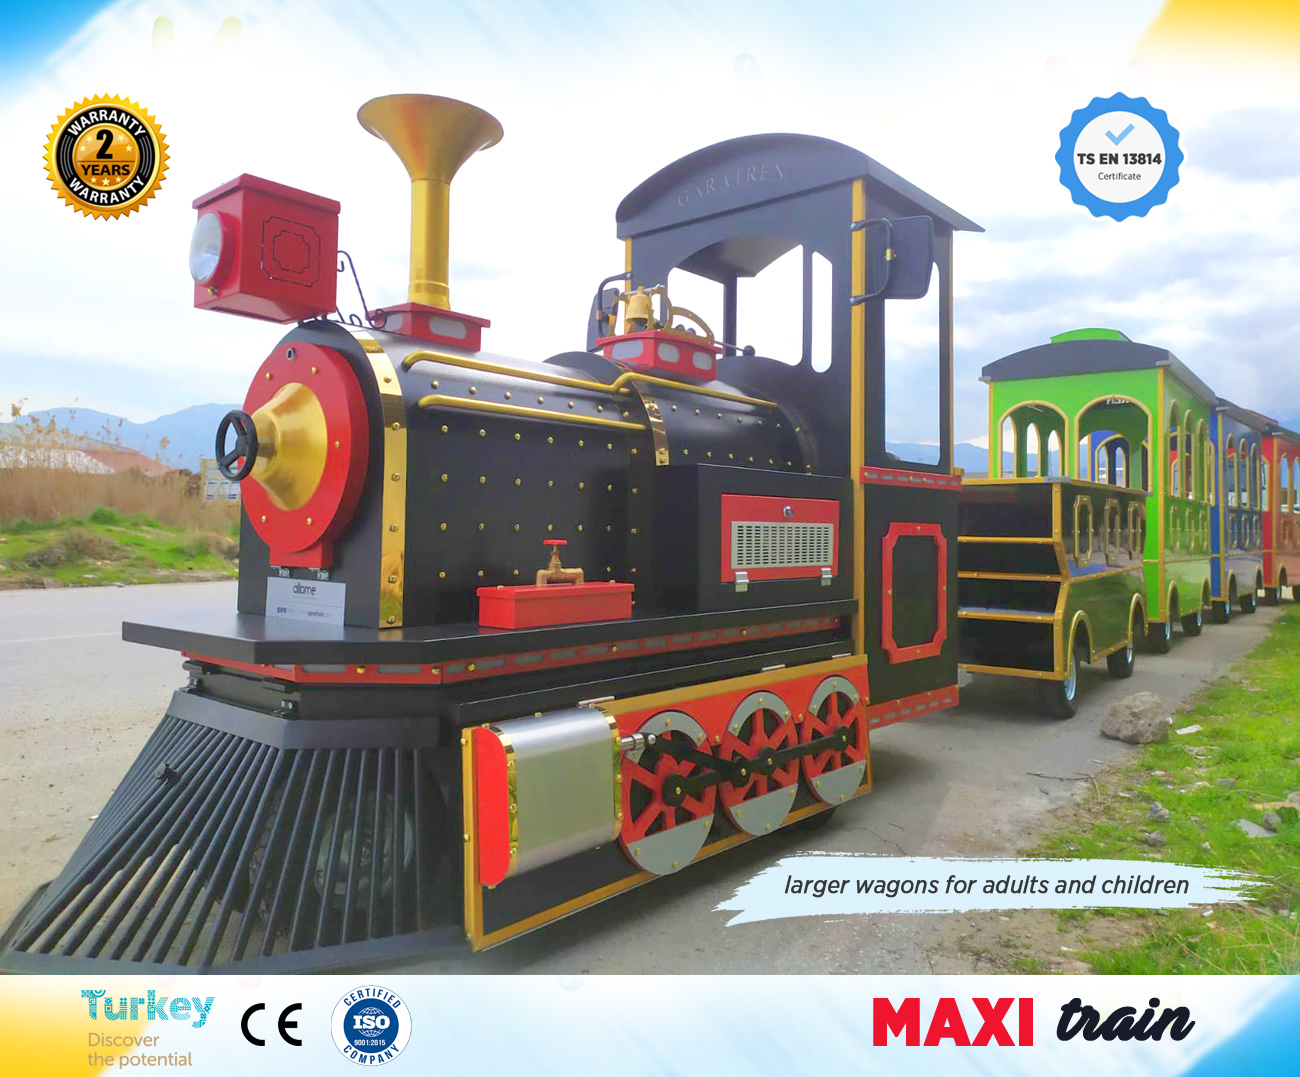 trackless train maxi model larger wagons